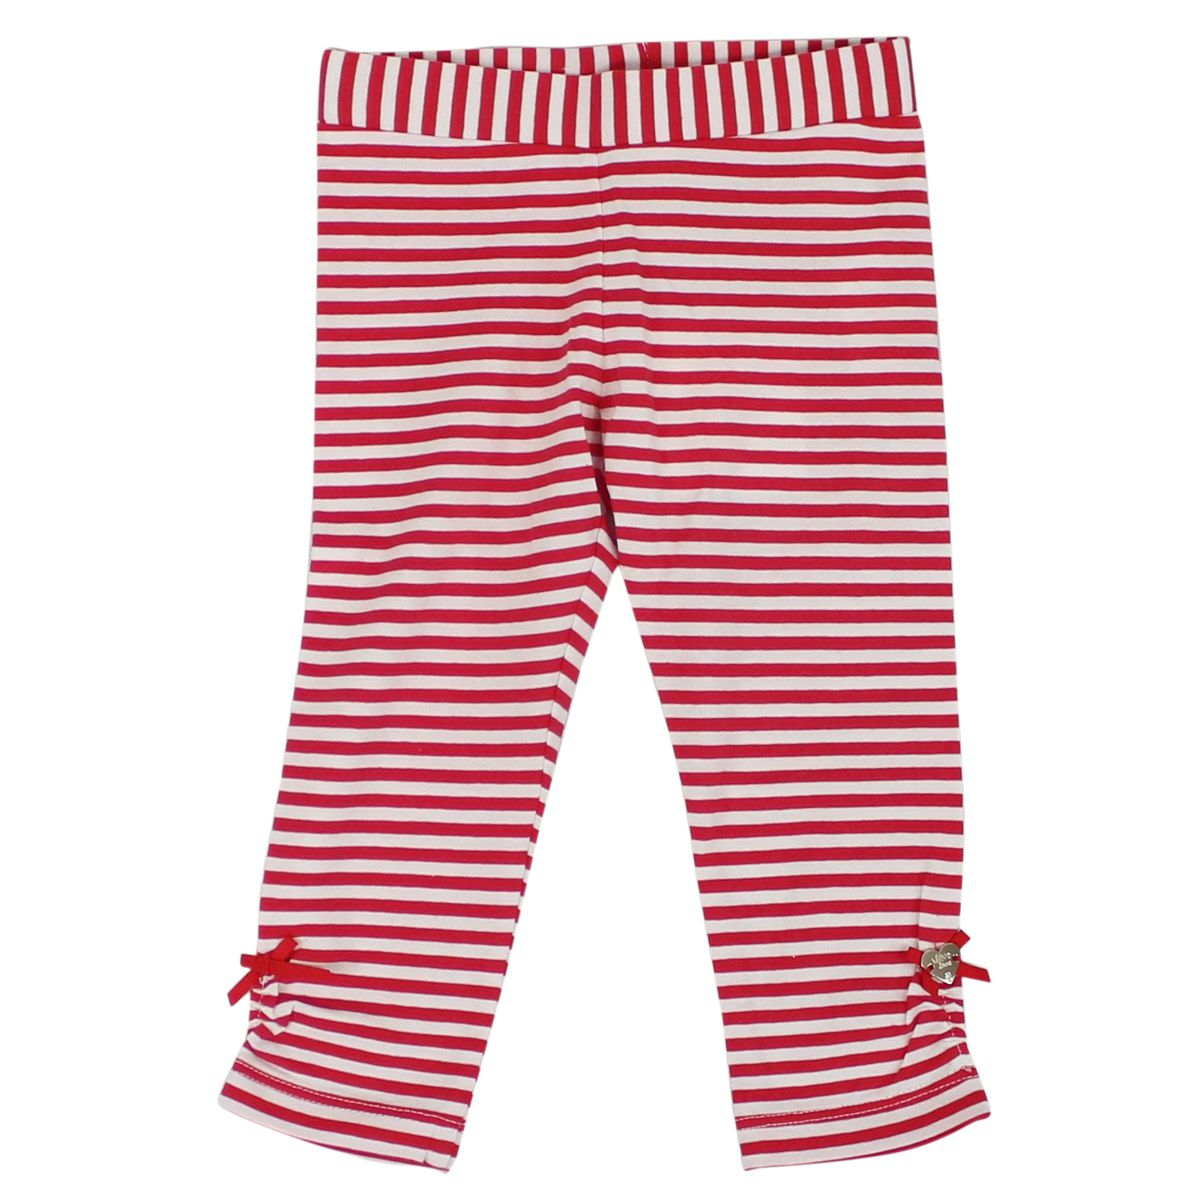 Leggings with striped pattern and bows White / pink LIU JO